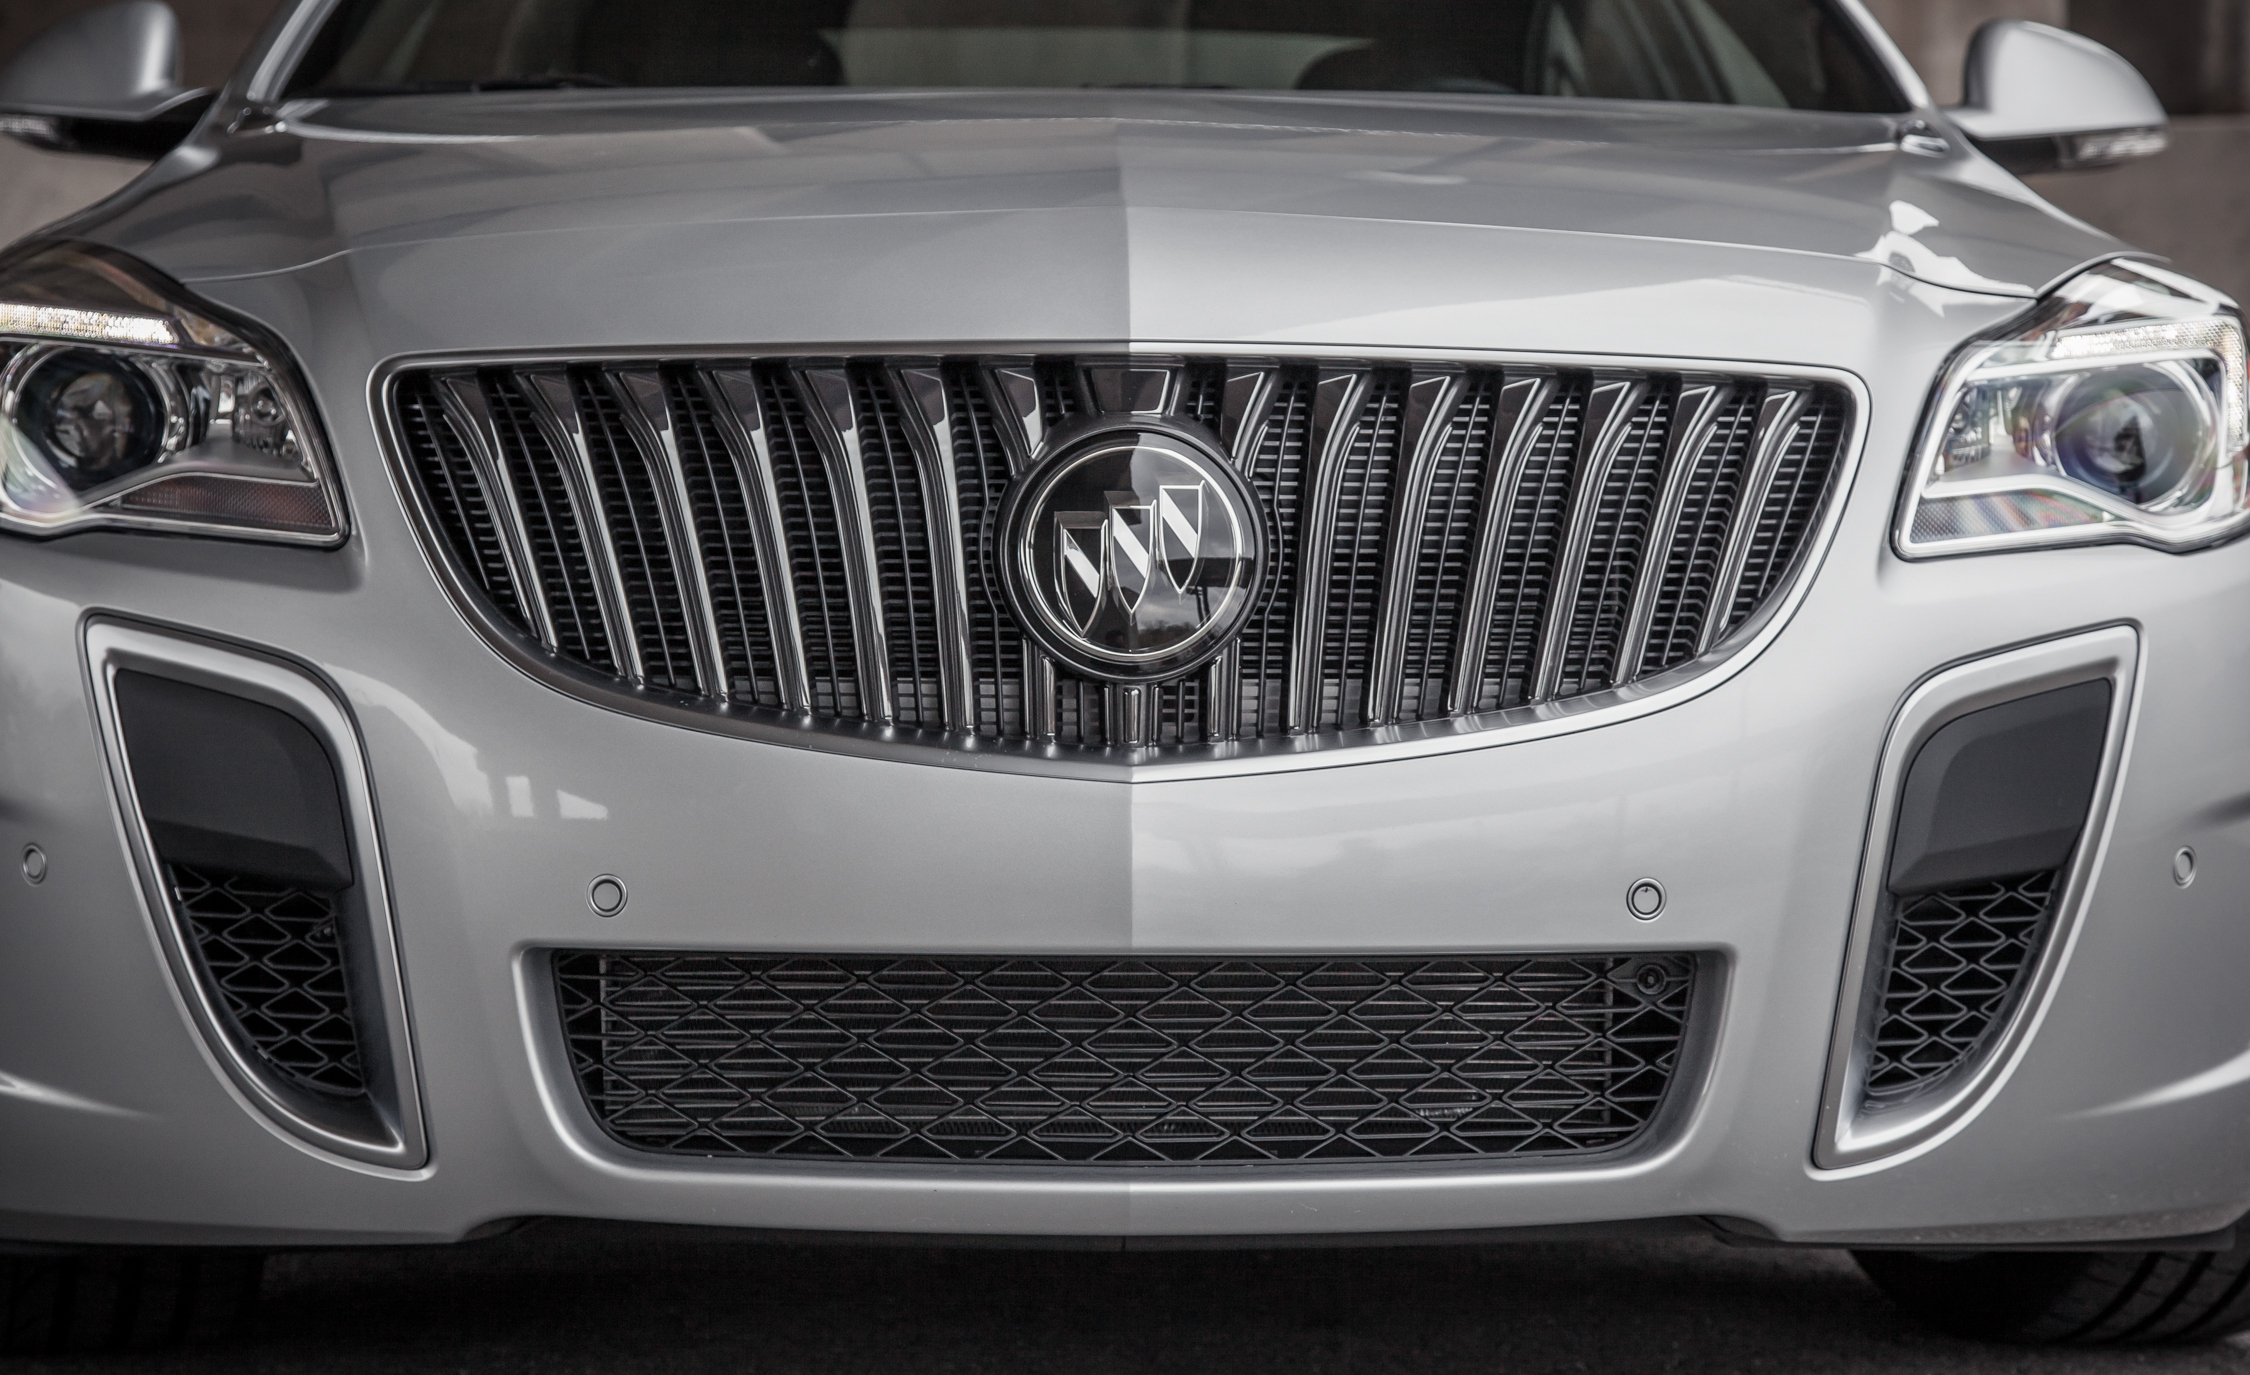 2014 Buick Regal GS (Photo 6 of 30)